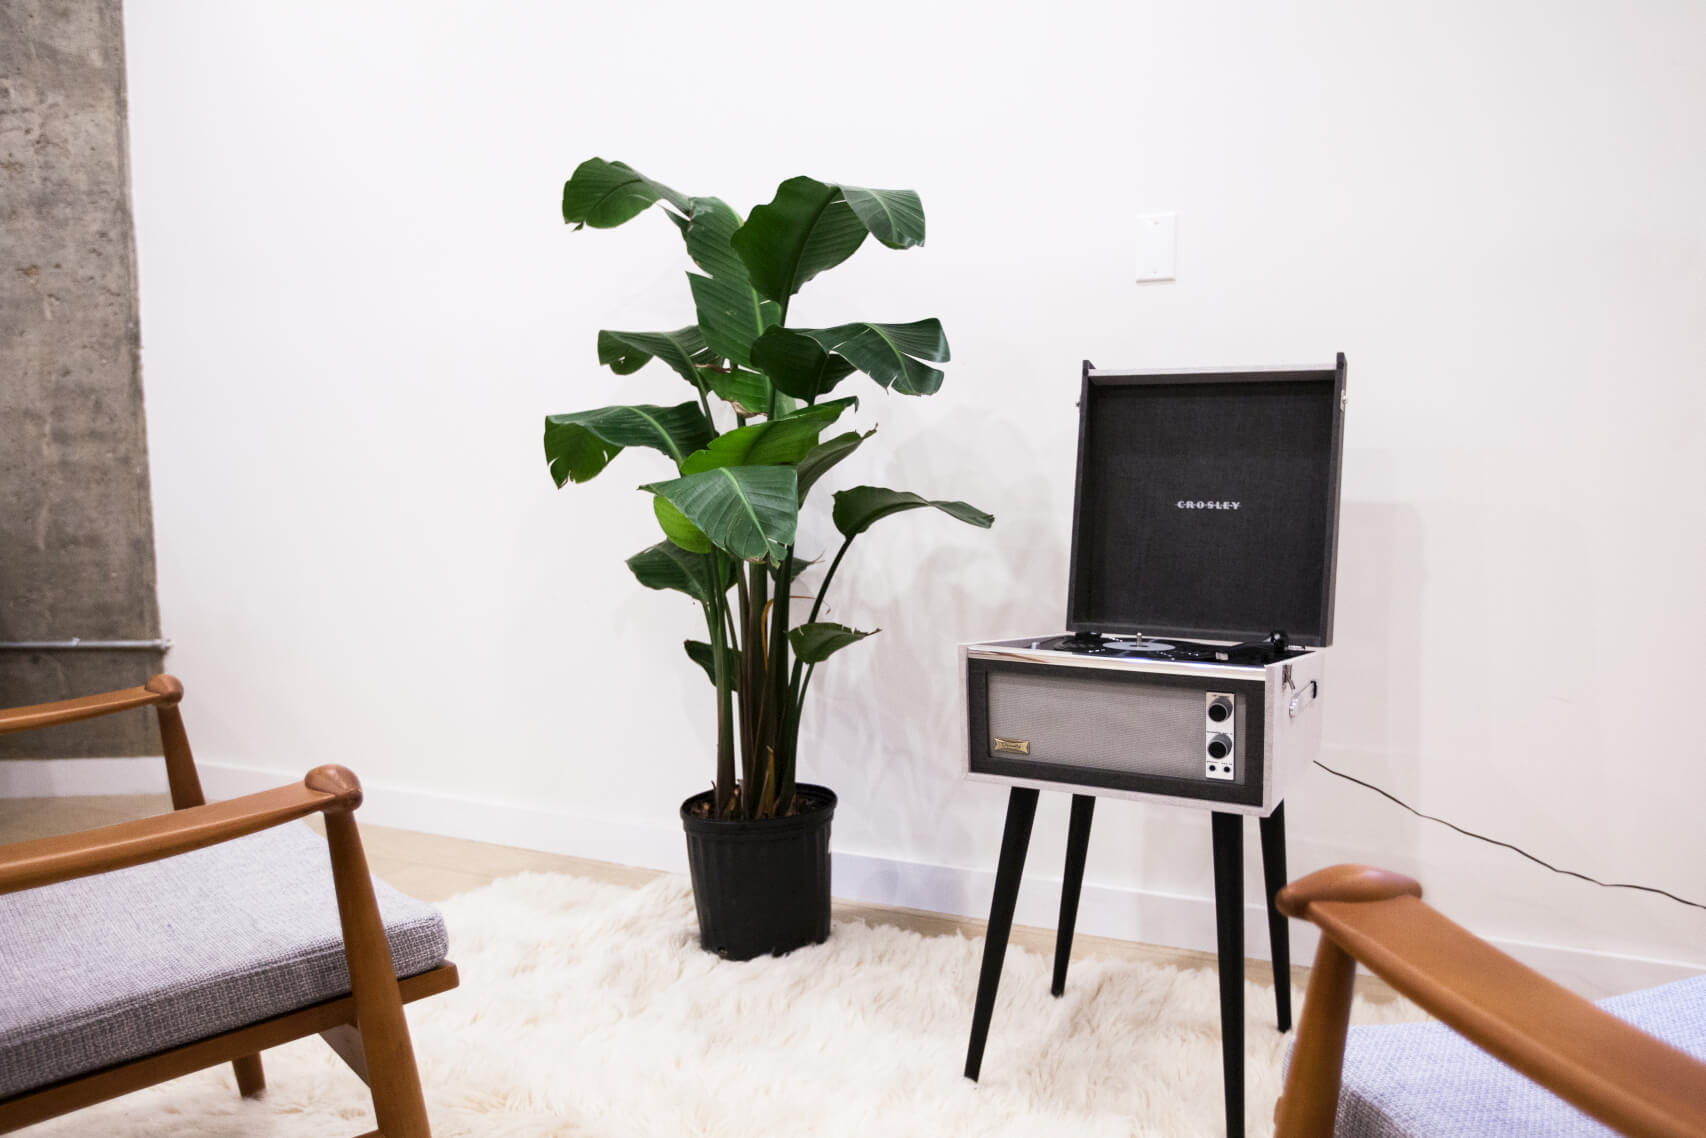 Every Common home is furnished with our members in mind. Pictured: the record player in the Common Havemeyer Lounge.